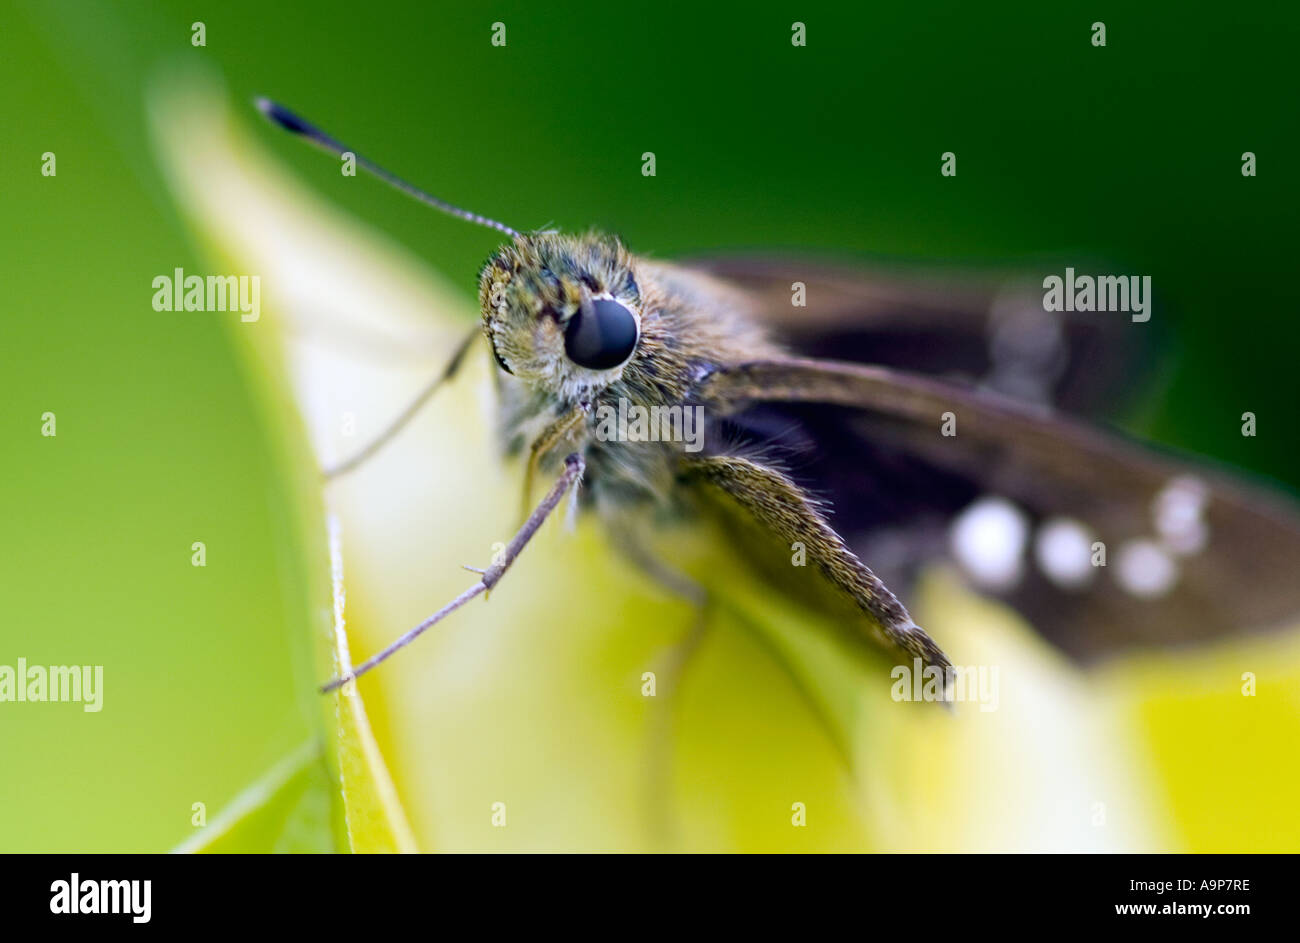 Small moth sitting on leaf in India Stock Photo